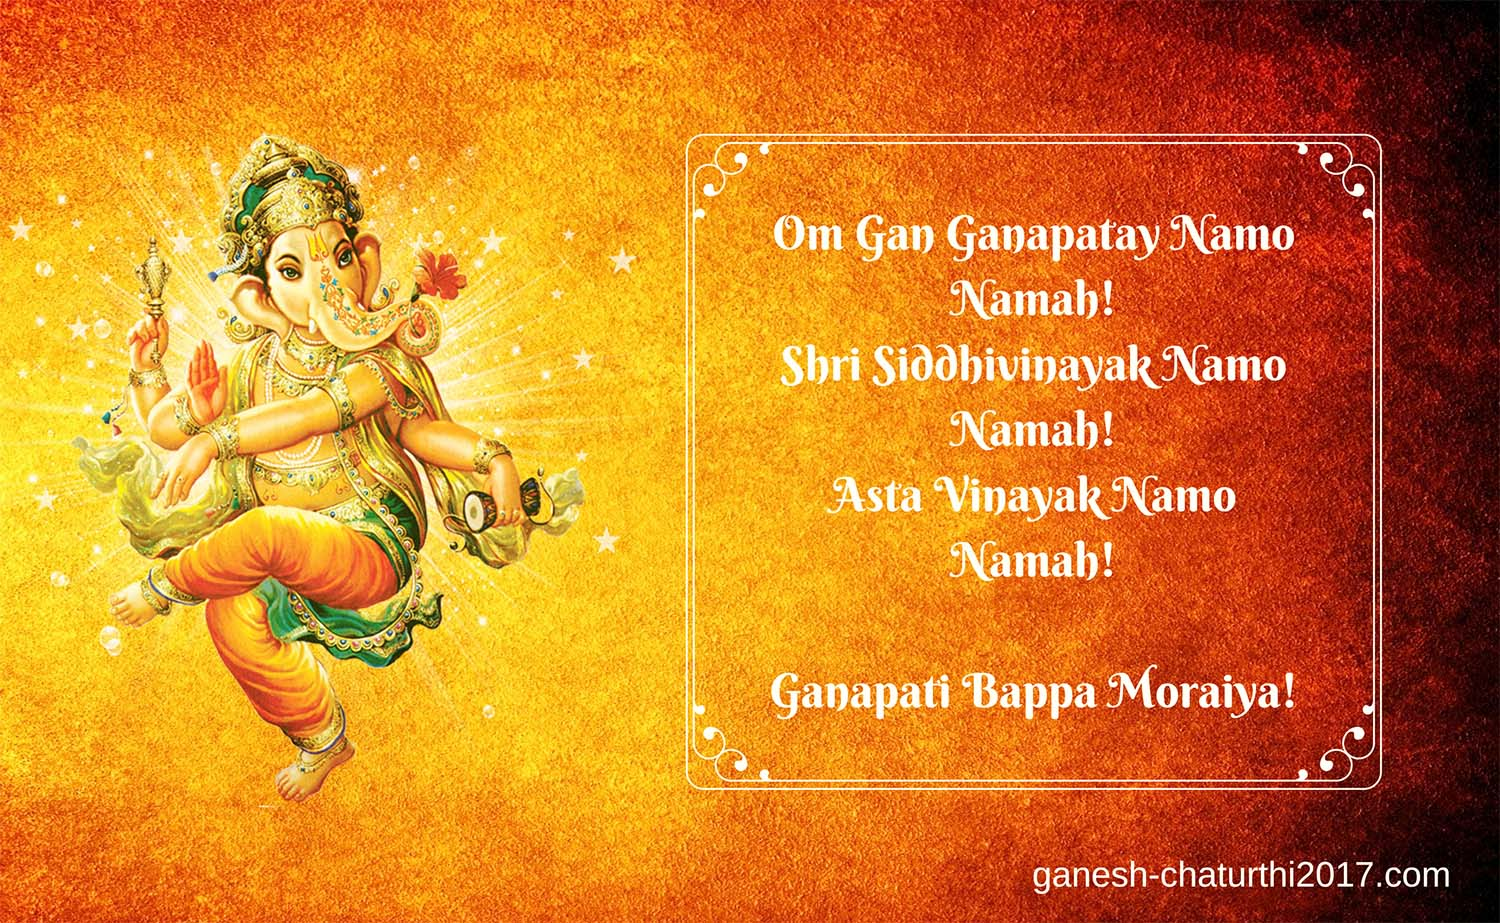 Ganesha Festival wishes in English